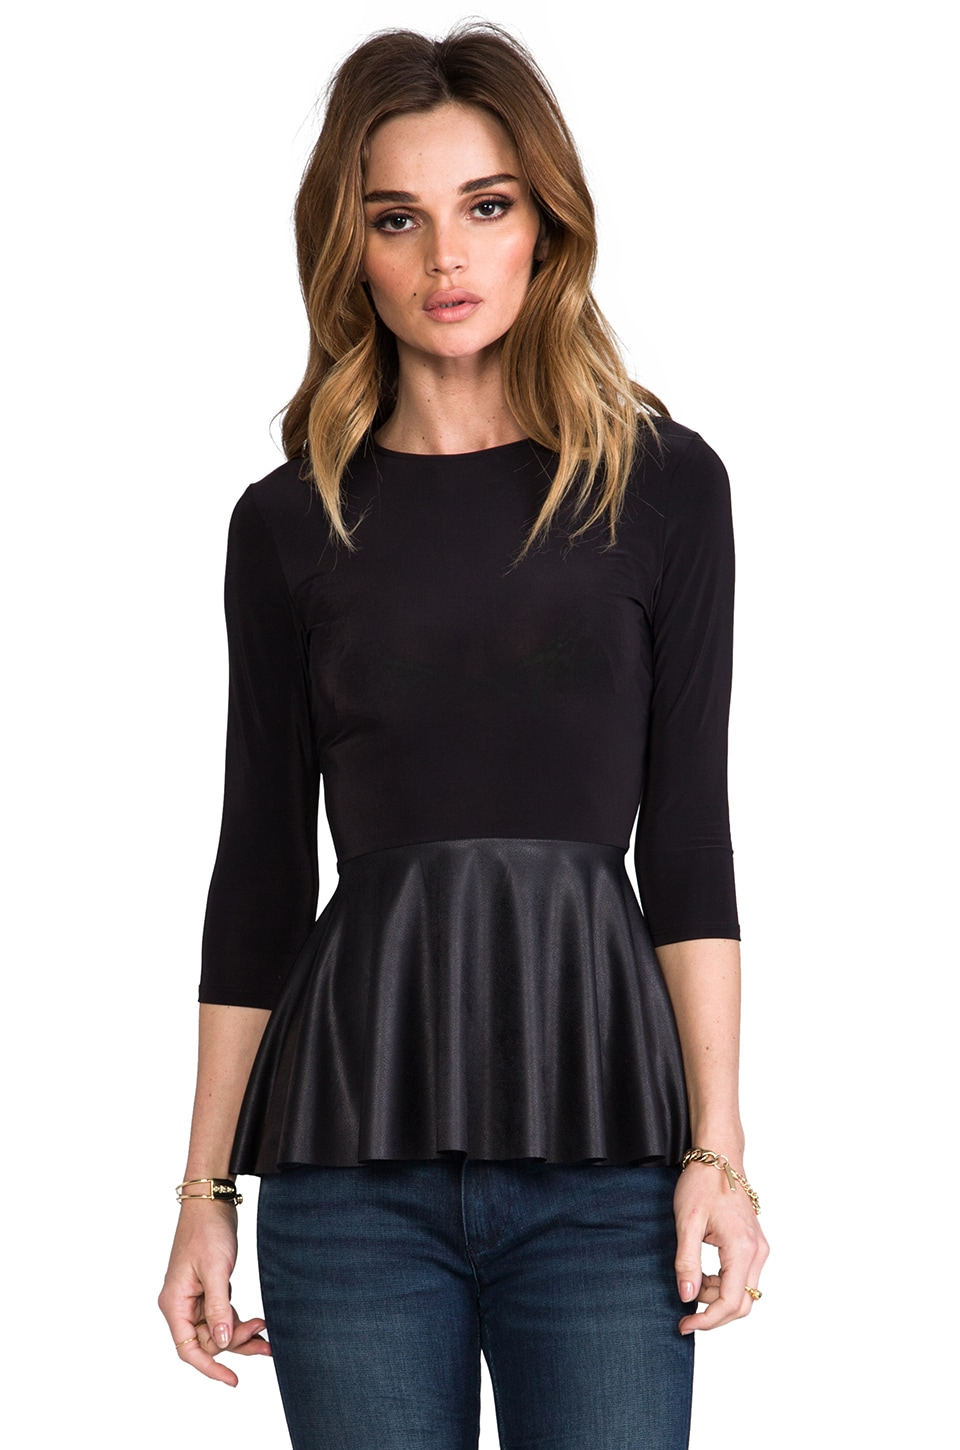 T-Bags LosAngeles T-Bags Los Angeles Peplum Top in Black